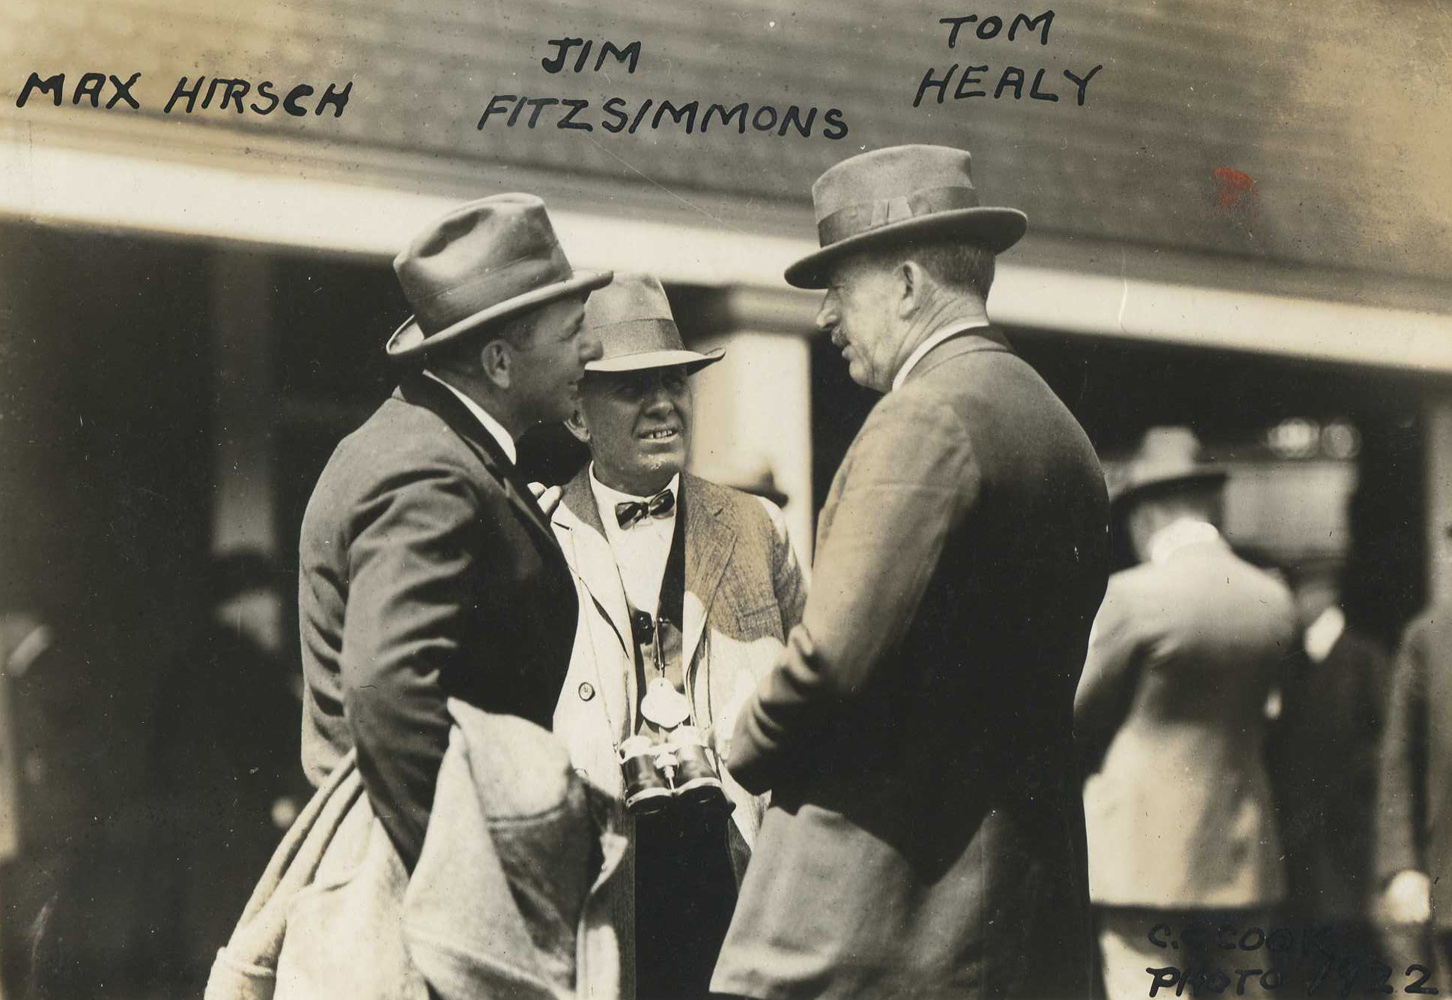 "A young James ""Sunny Jim"" Fiitzsimmons (center) with fellow future Hall of Fame trainers Max Hirsch and T. J. Healey in 1922 (C. C. Cook/Museum Collection)"